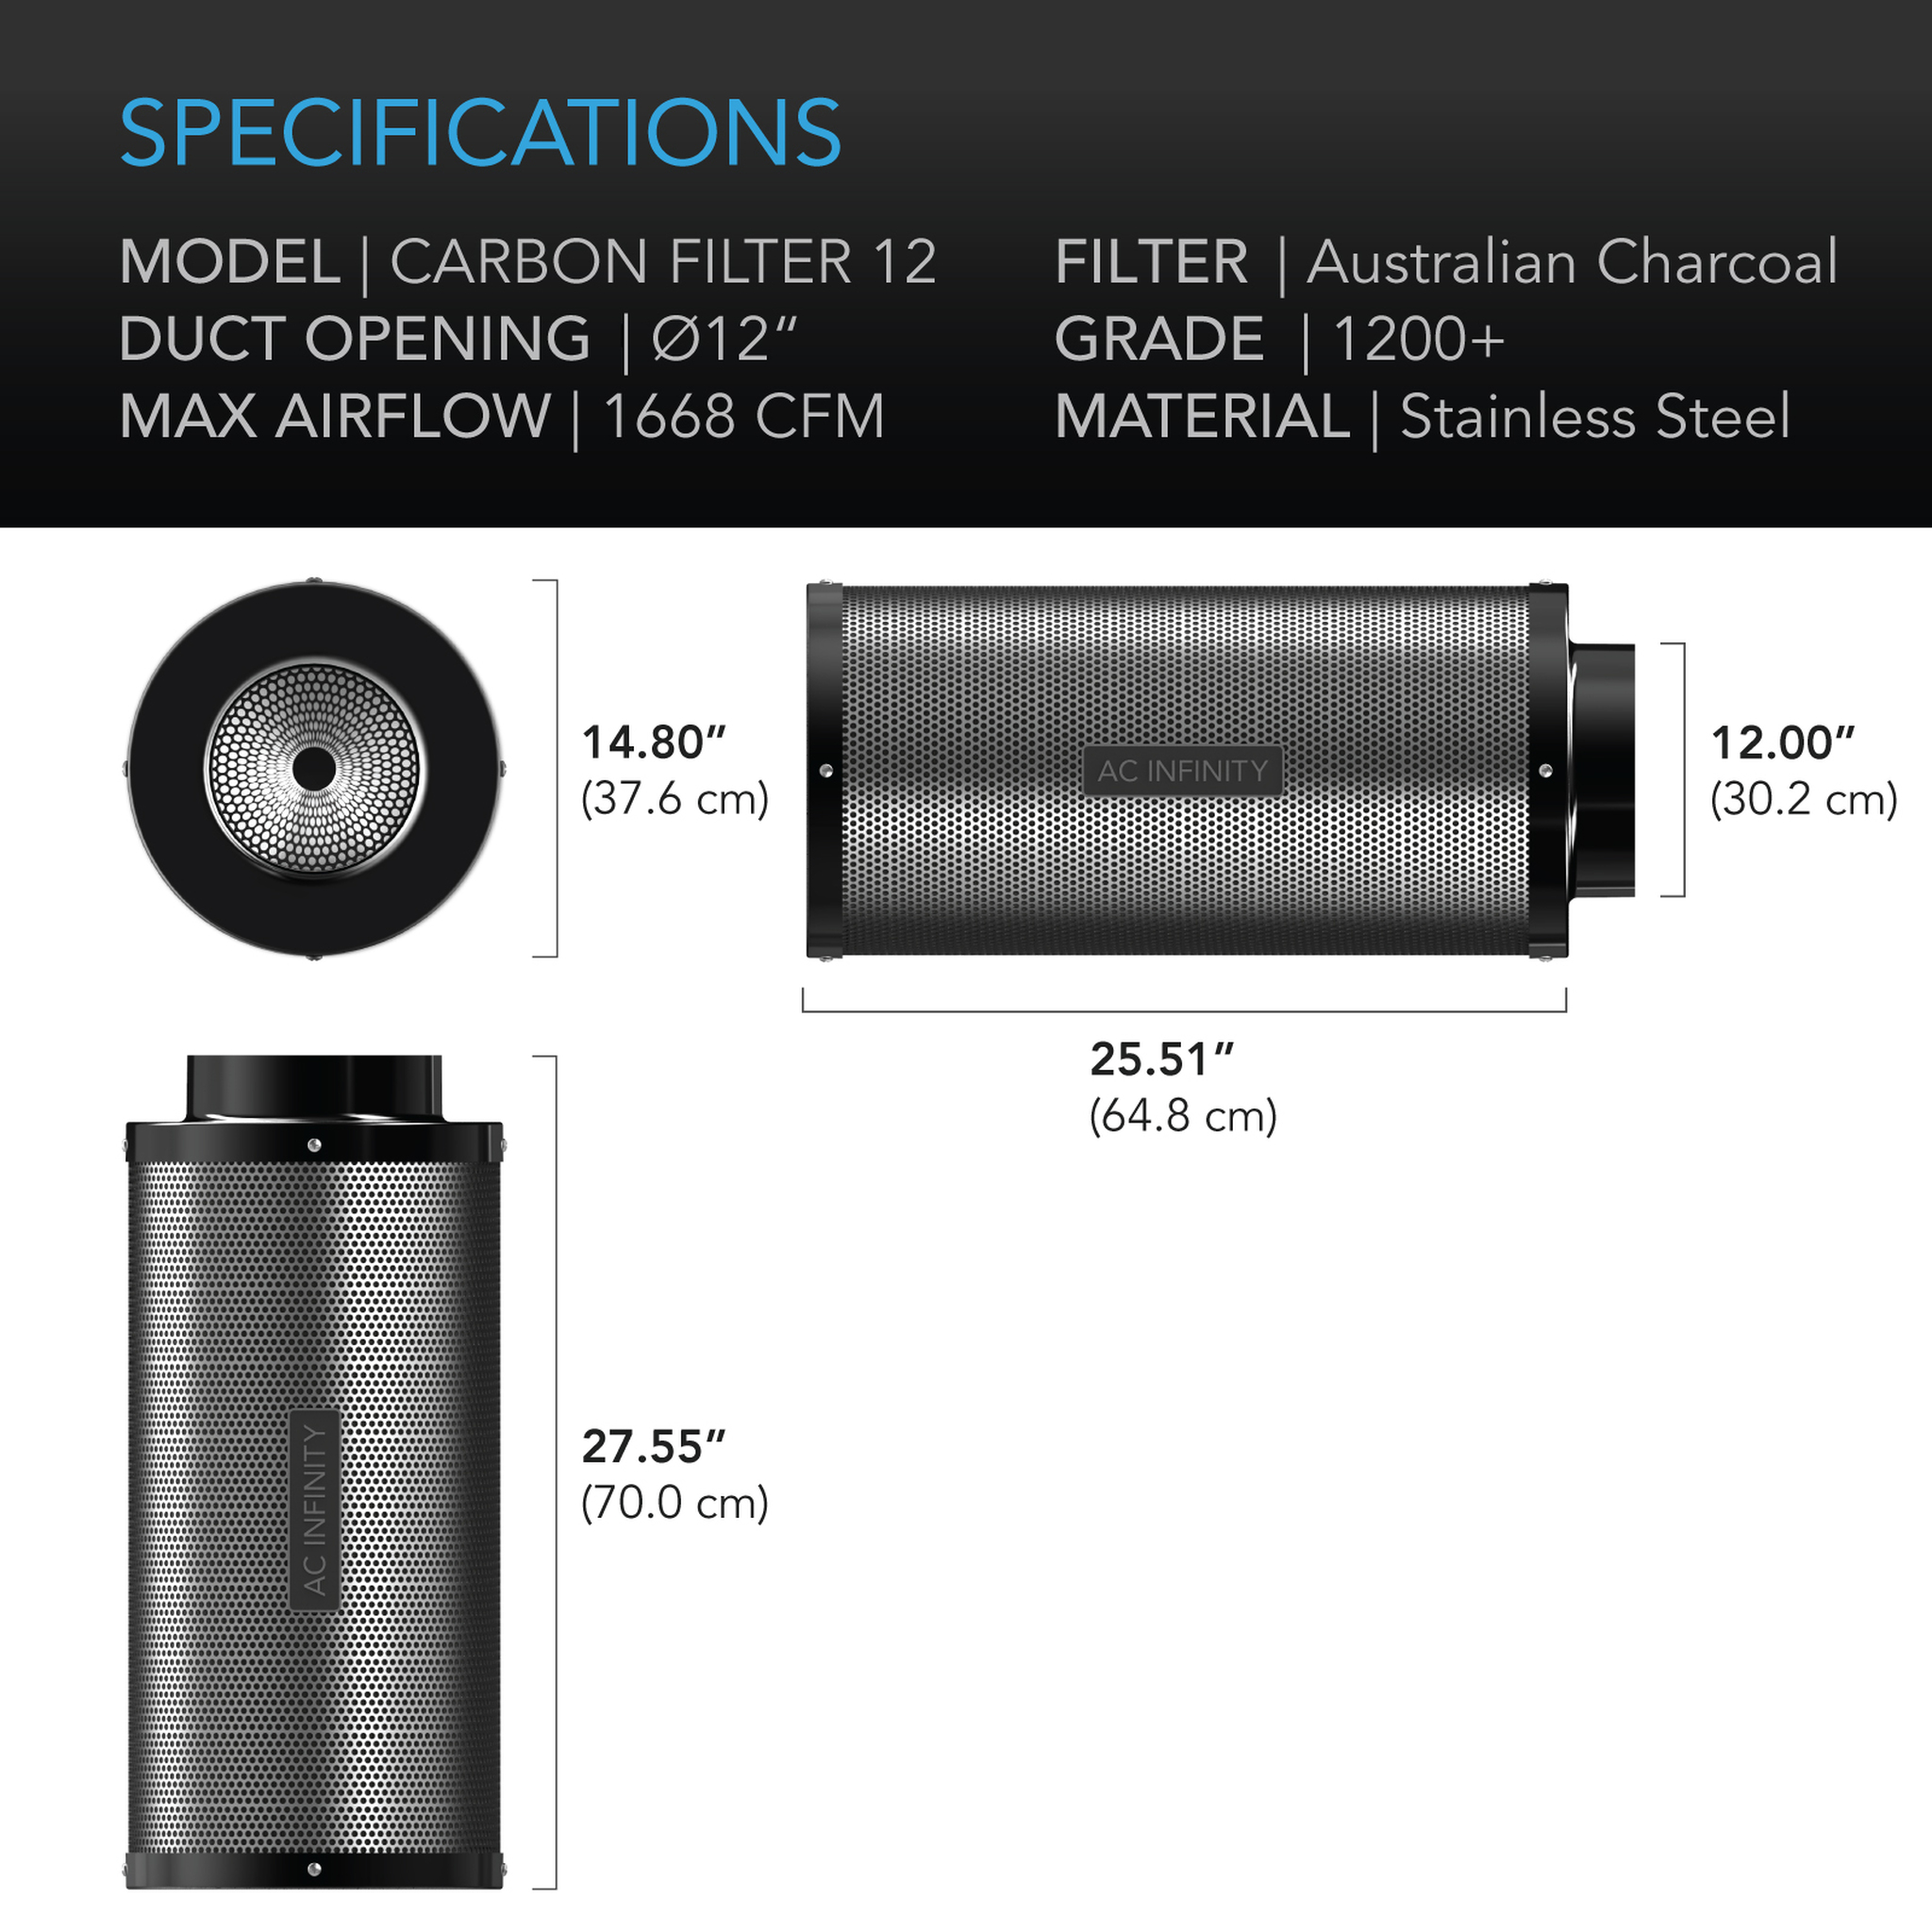 Duct Carbon Filter dimensions